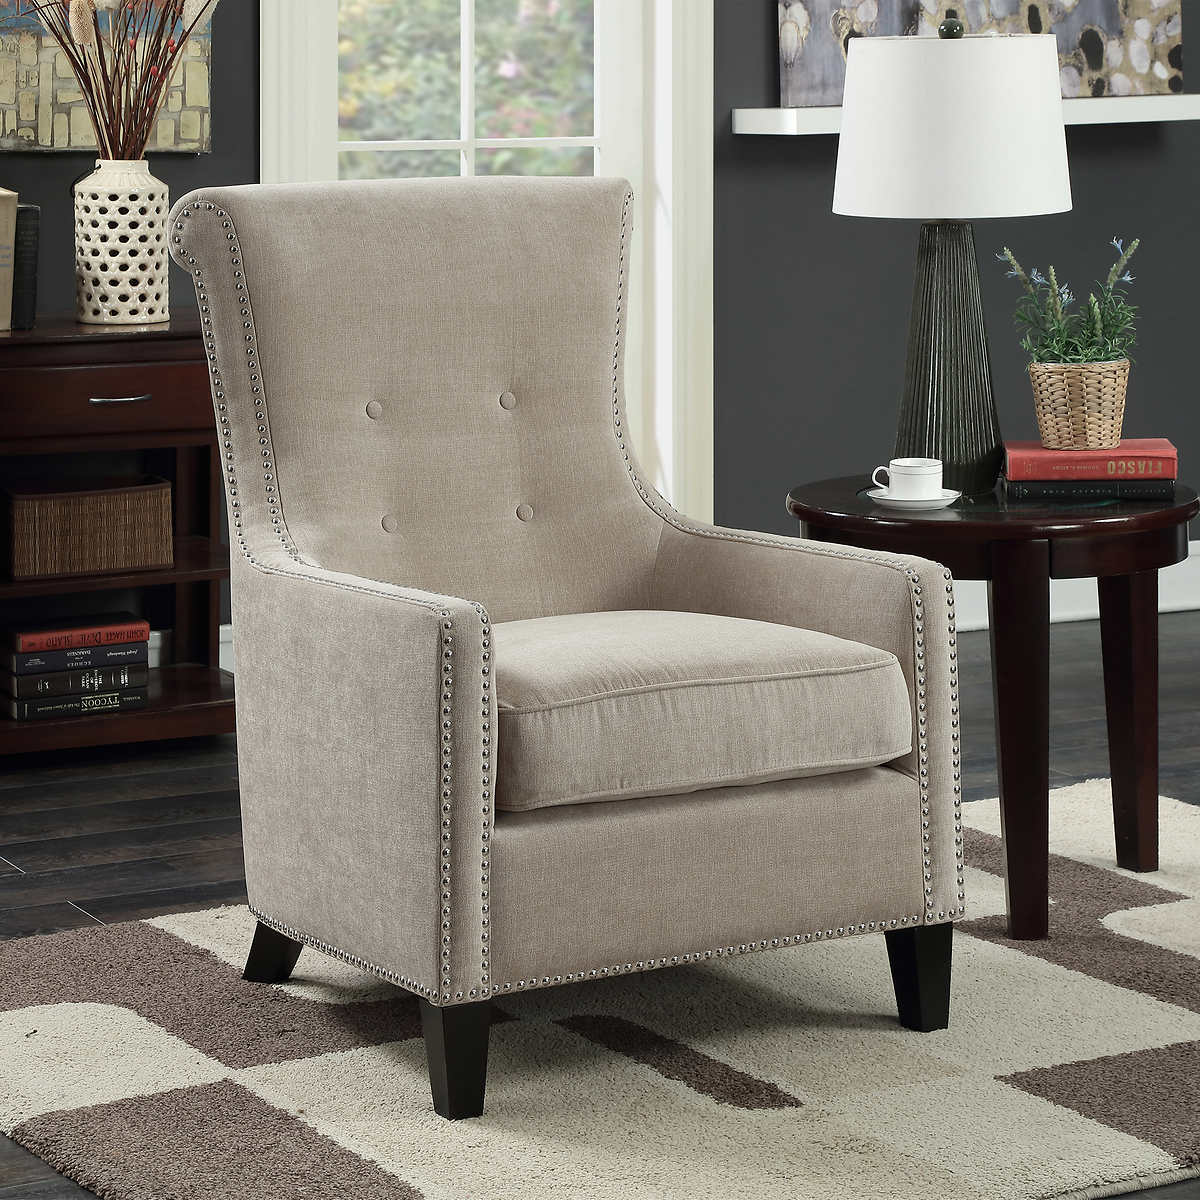 Snugglers Furniture Kitchener Accent Chairs